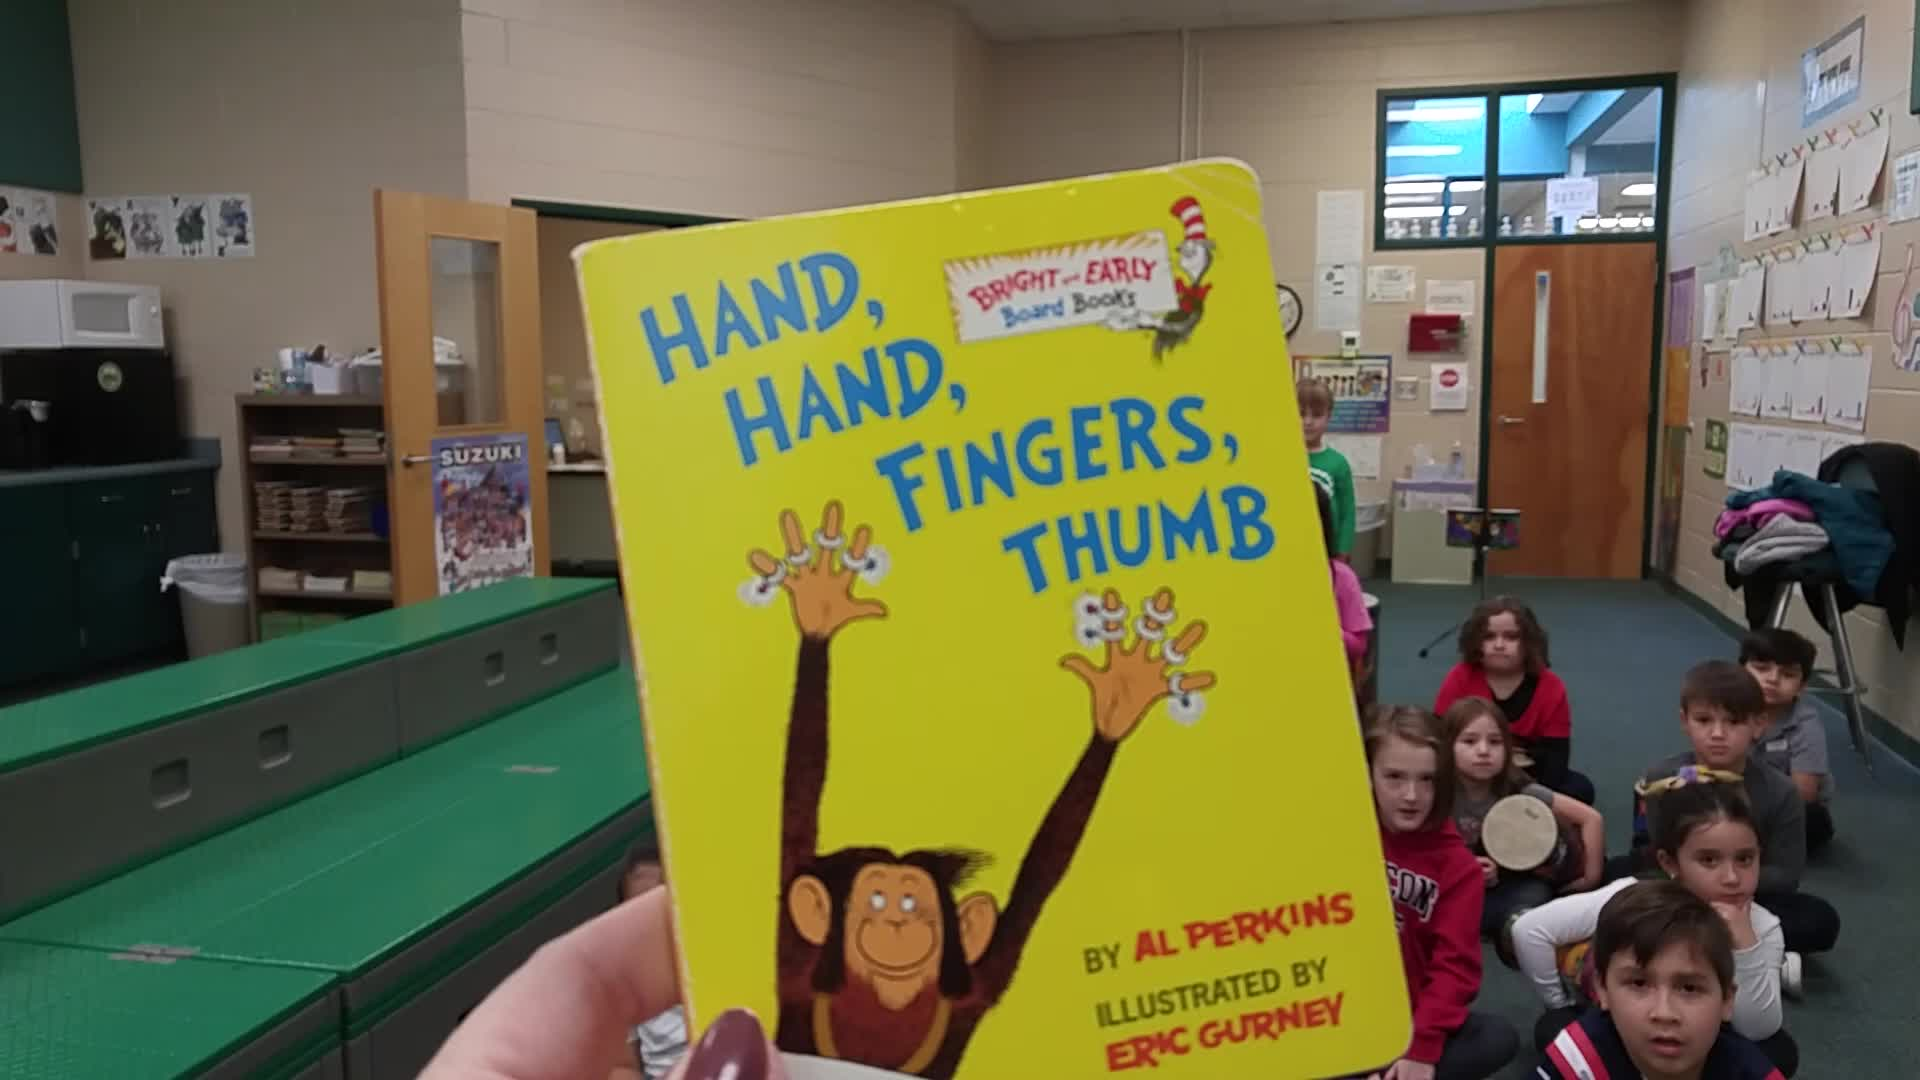 Hands, Hands, Fingers, Thumbs - drums - BES-Harper-Lenz